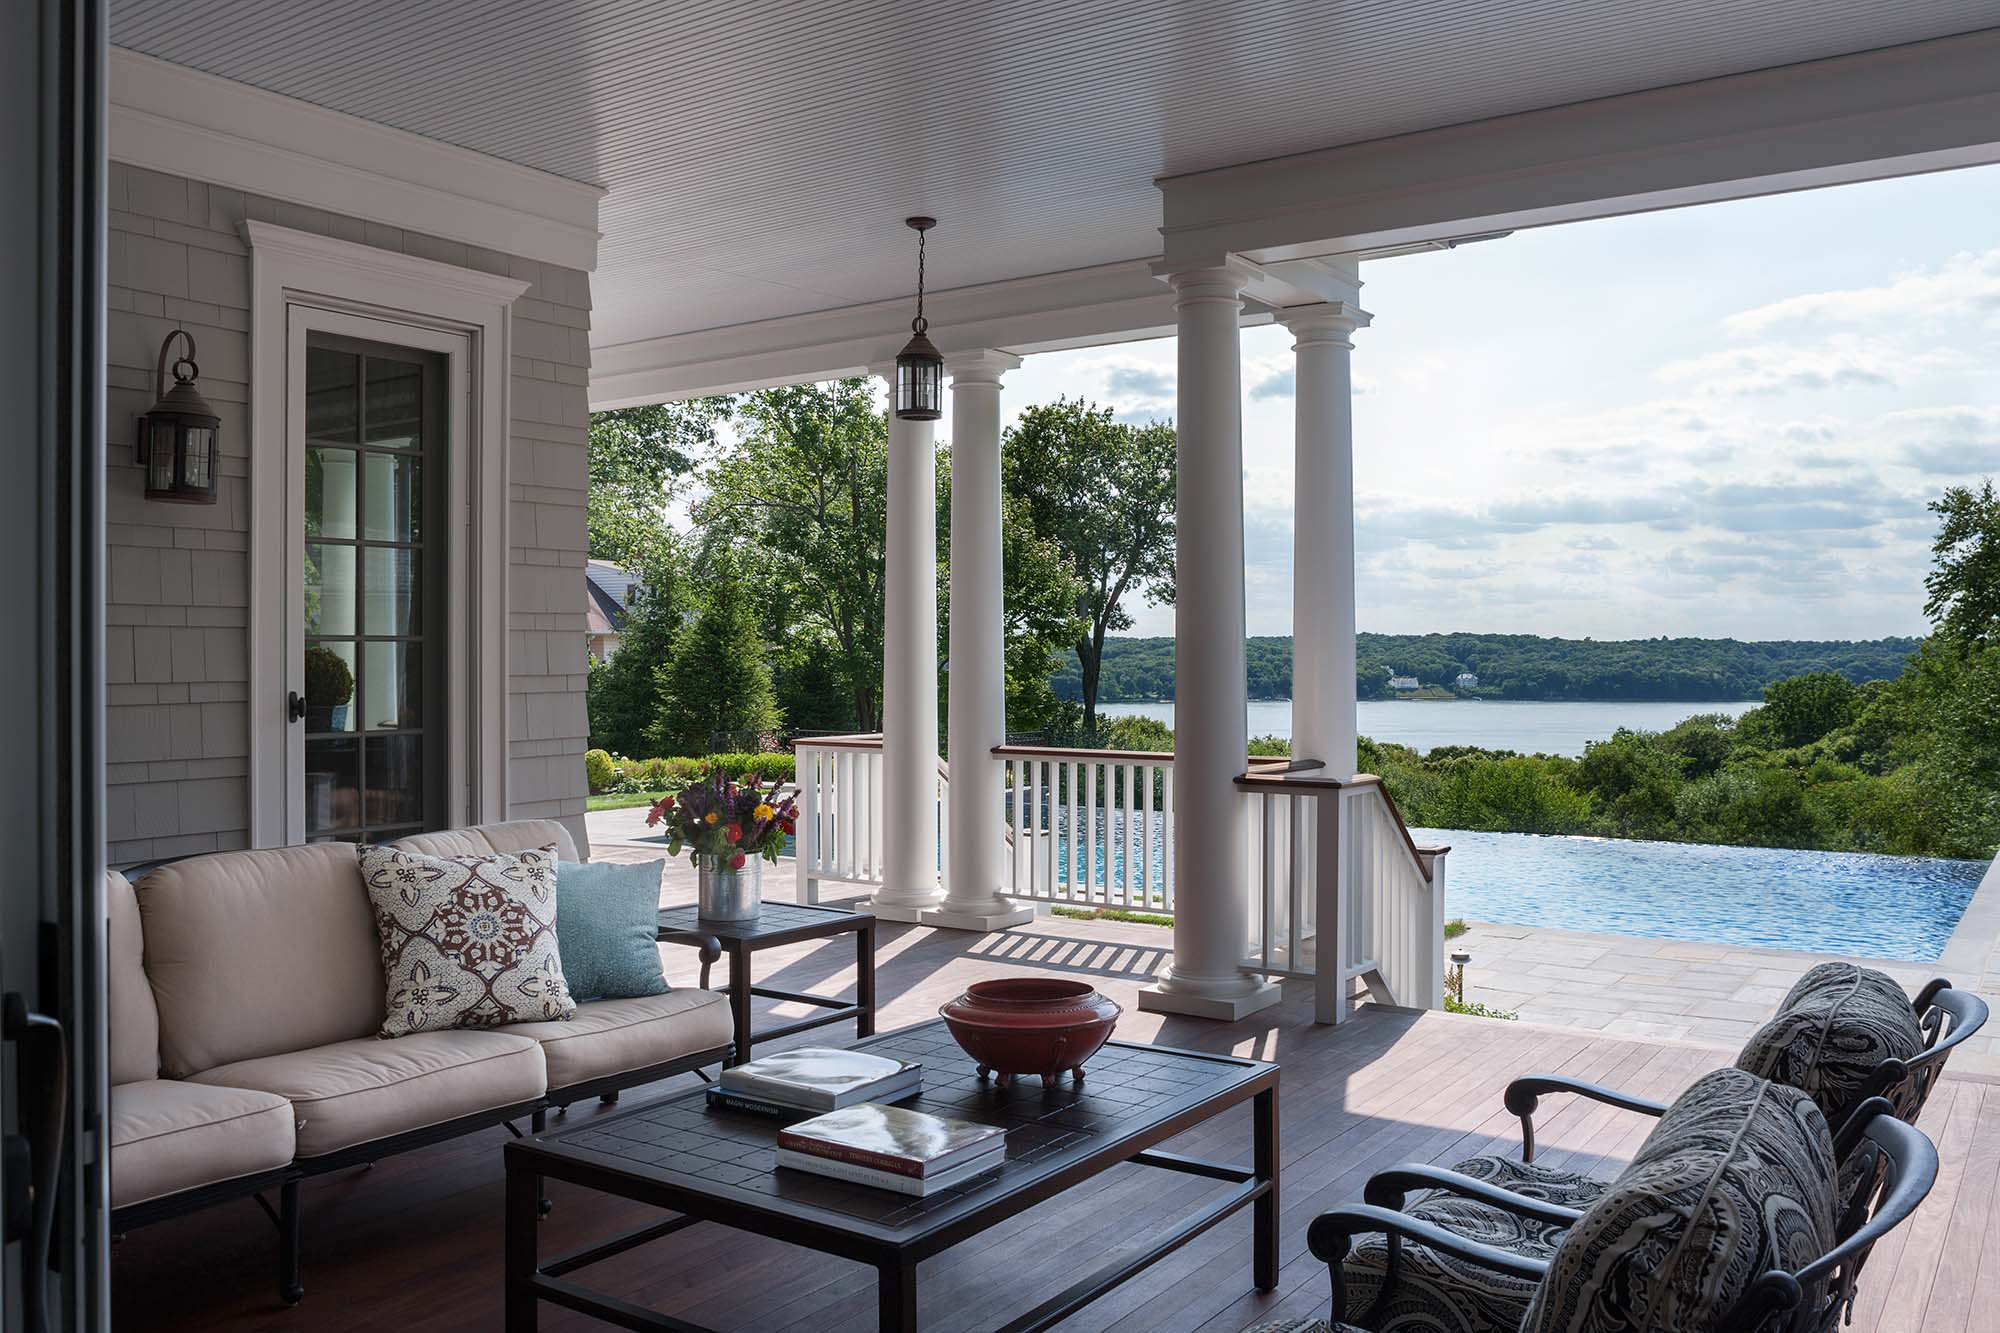 Queen Anne Revival, Cold Spring Harbor, long island, water view, long island sound, patio, deck, doric columns, ceiling fan, infinity pool